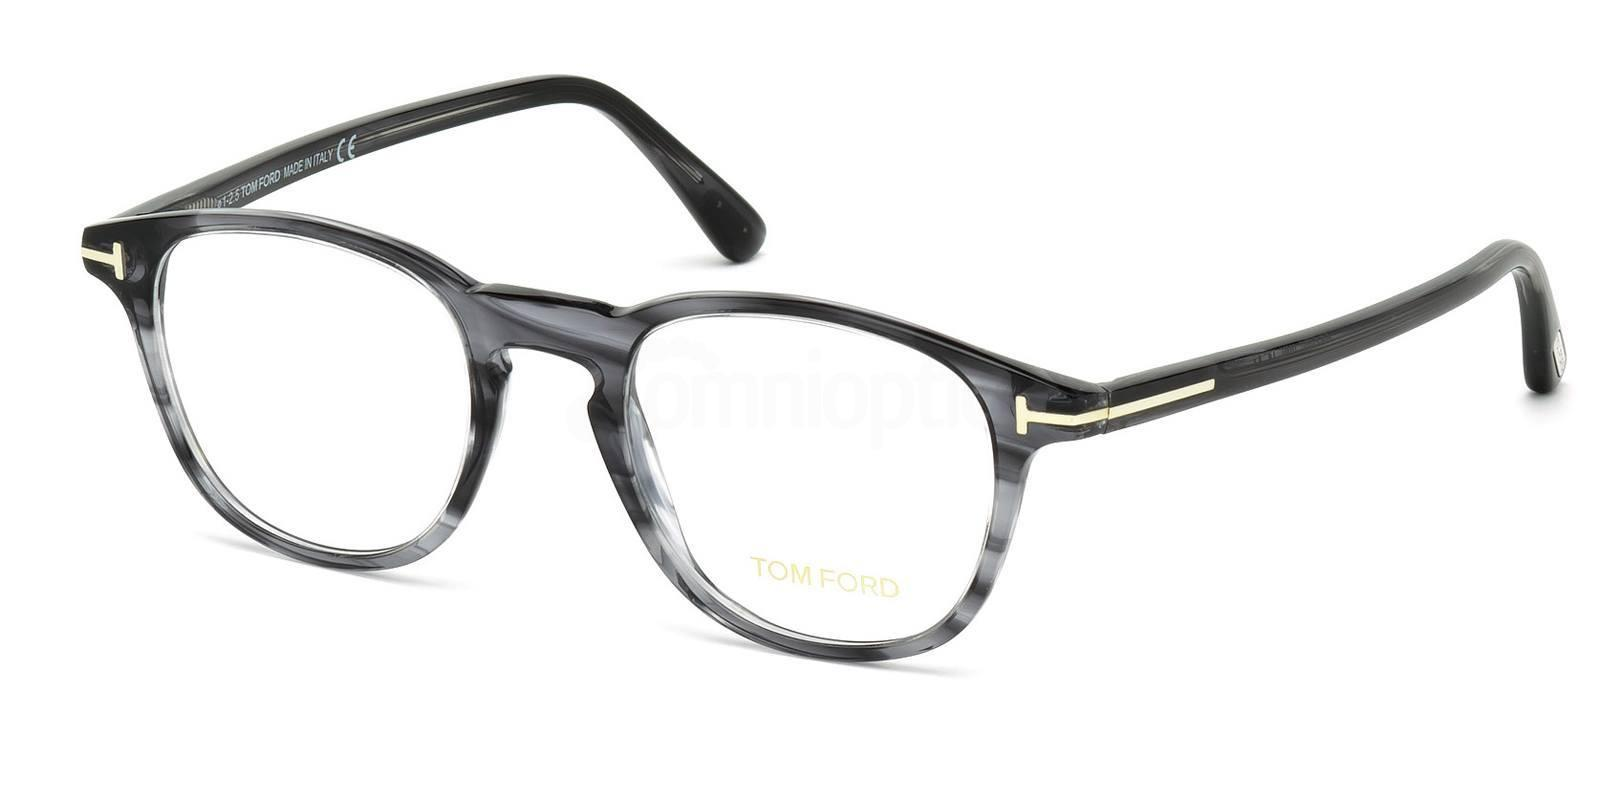 020 FT5389 Glasses, Tom Ford